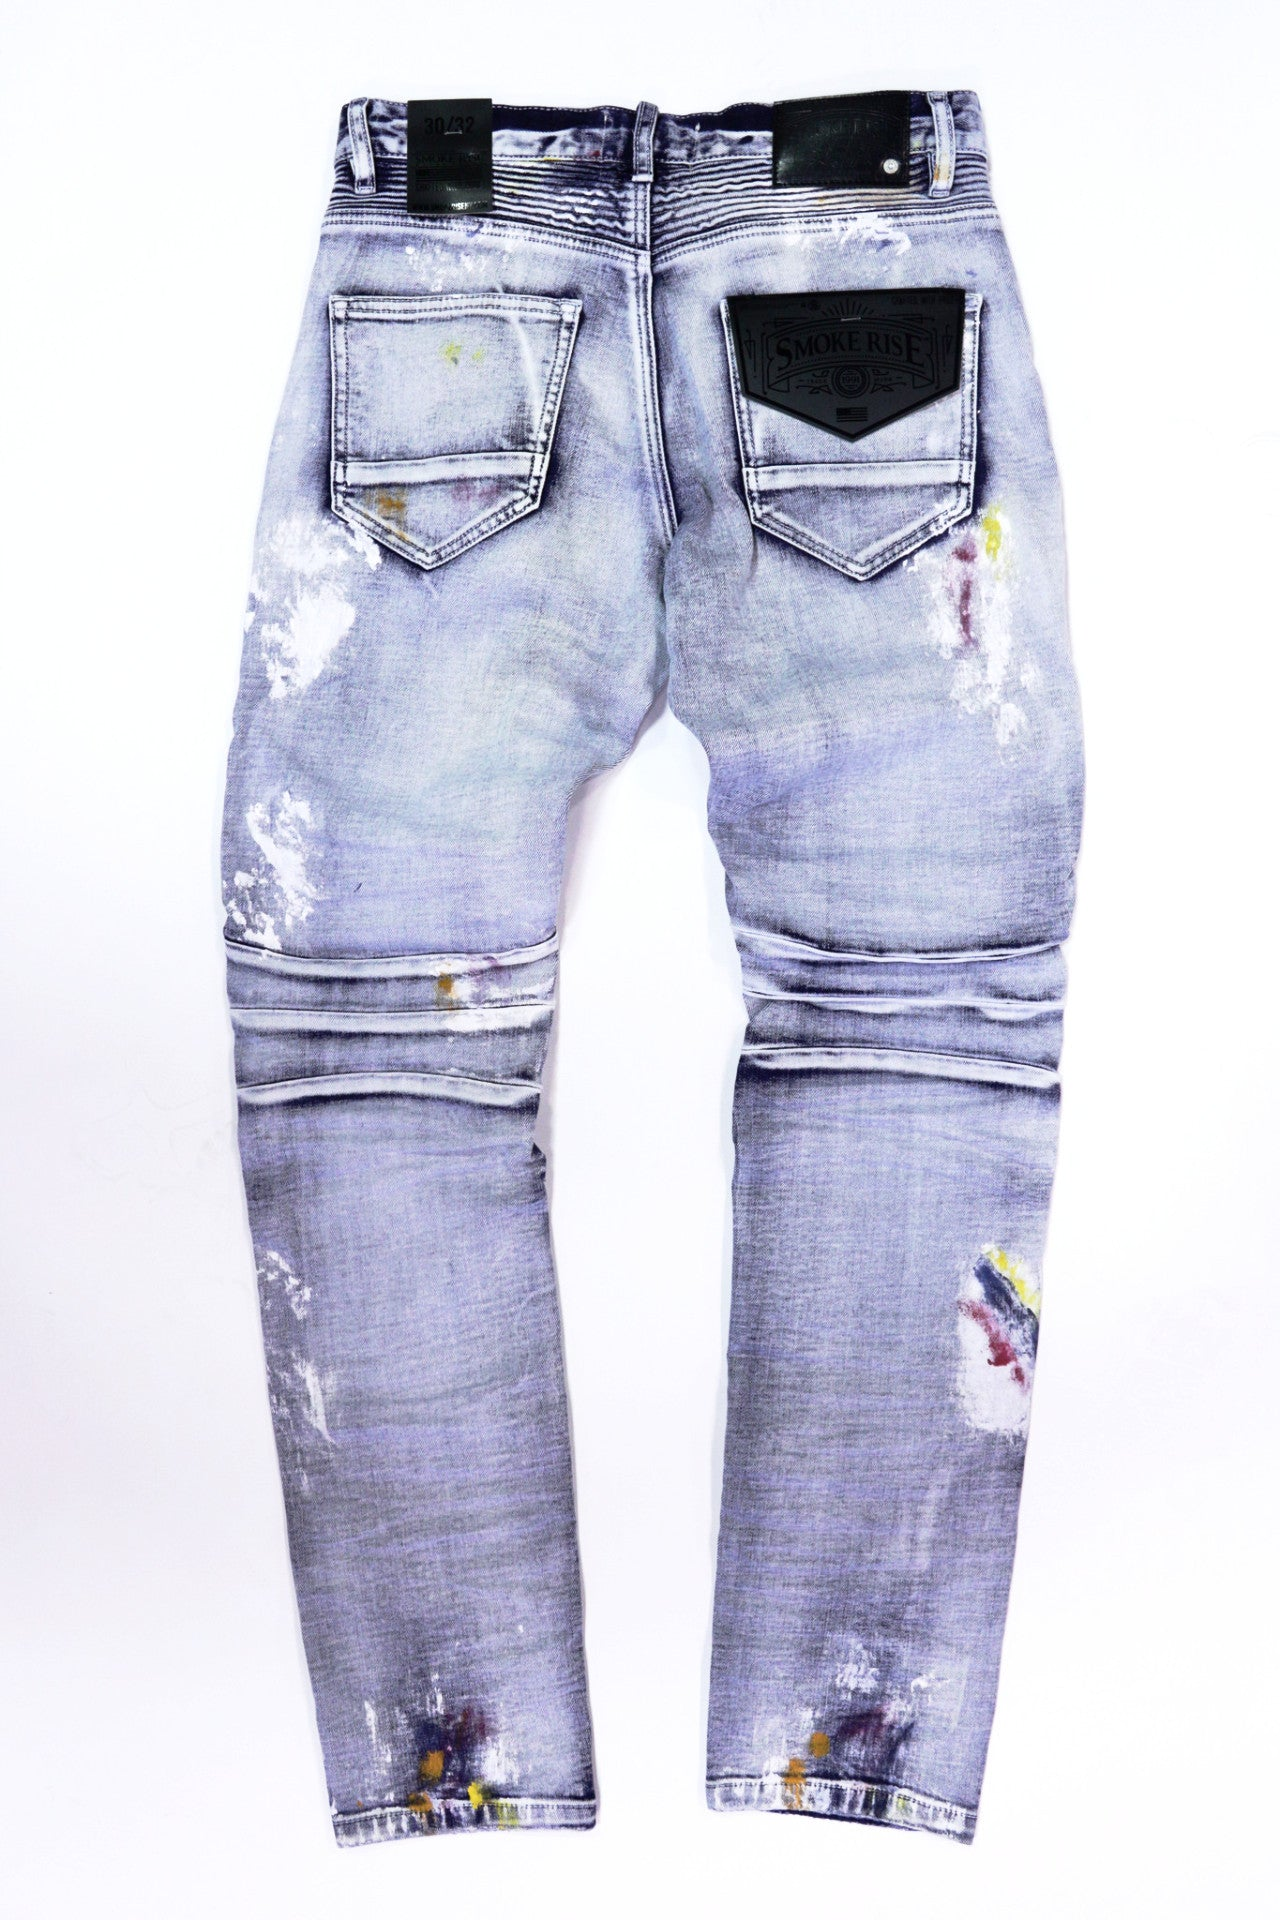 Smoke Rise Biker Denim Jeans